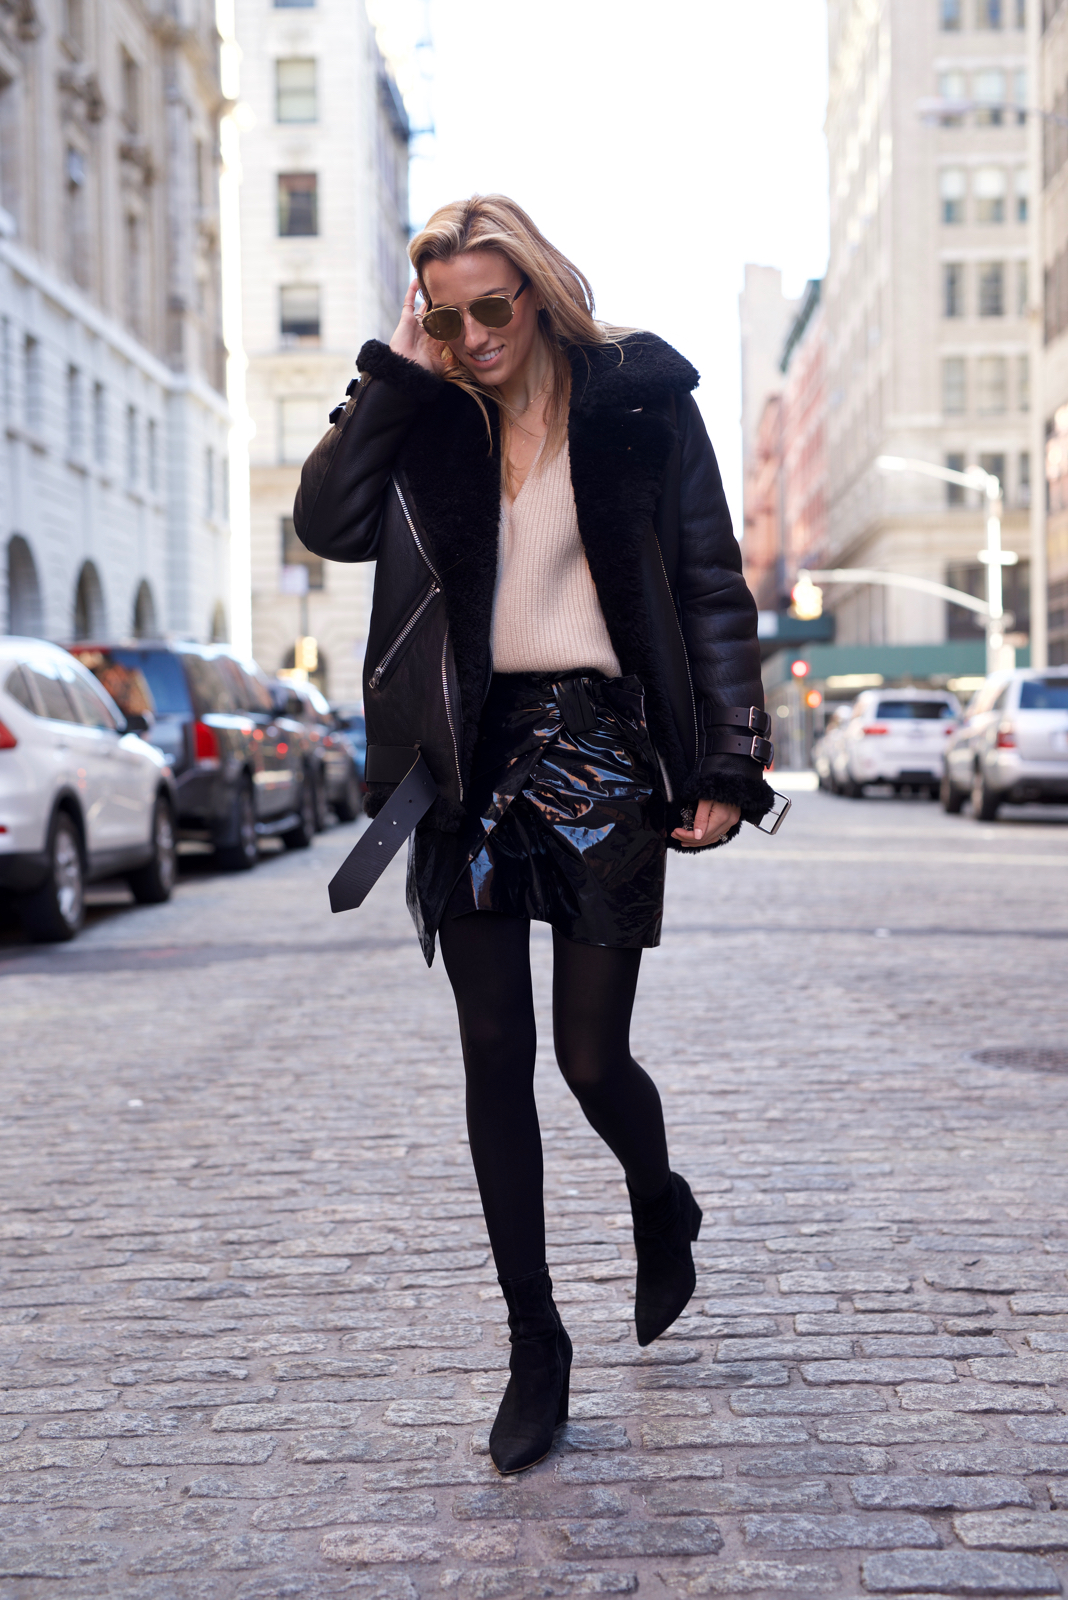 Acne Studios Velocite Coat, Dior Sunglasses, Khaite Sweater, Isabel Marant Patent Leather Mini Skirt, Saint Laurent Bag